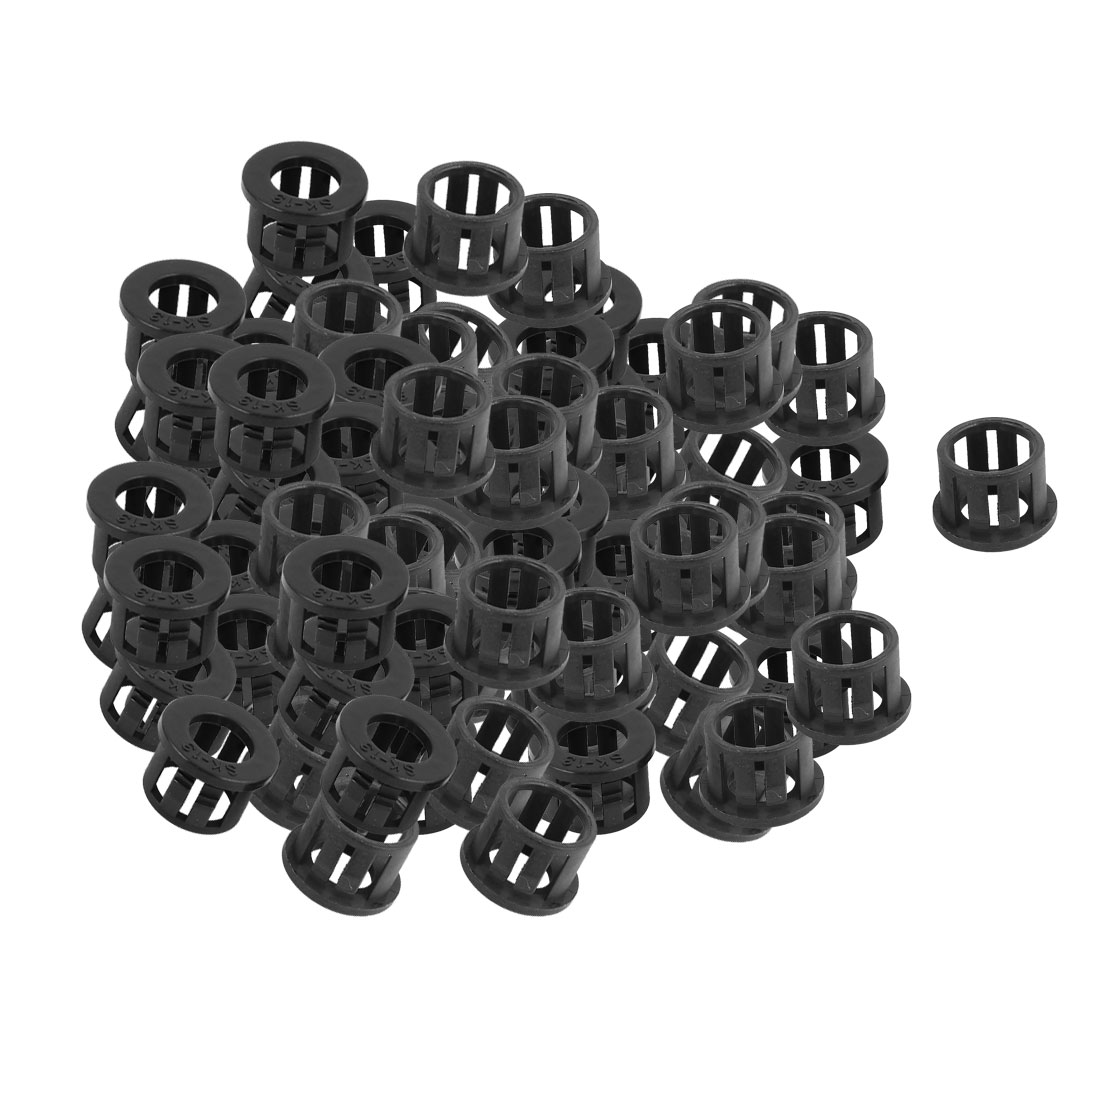 100 Pcs SK-13 8mm Wire Hole Diameter Cable Harness Protector Bushing Snap In